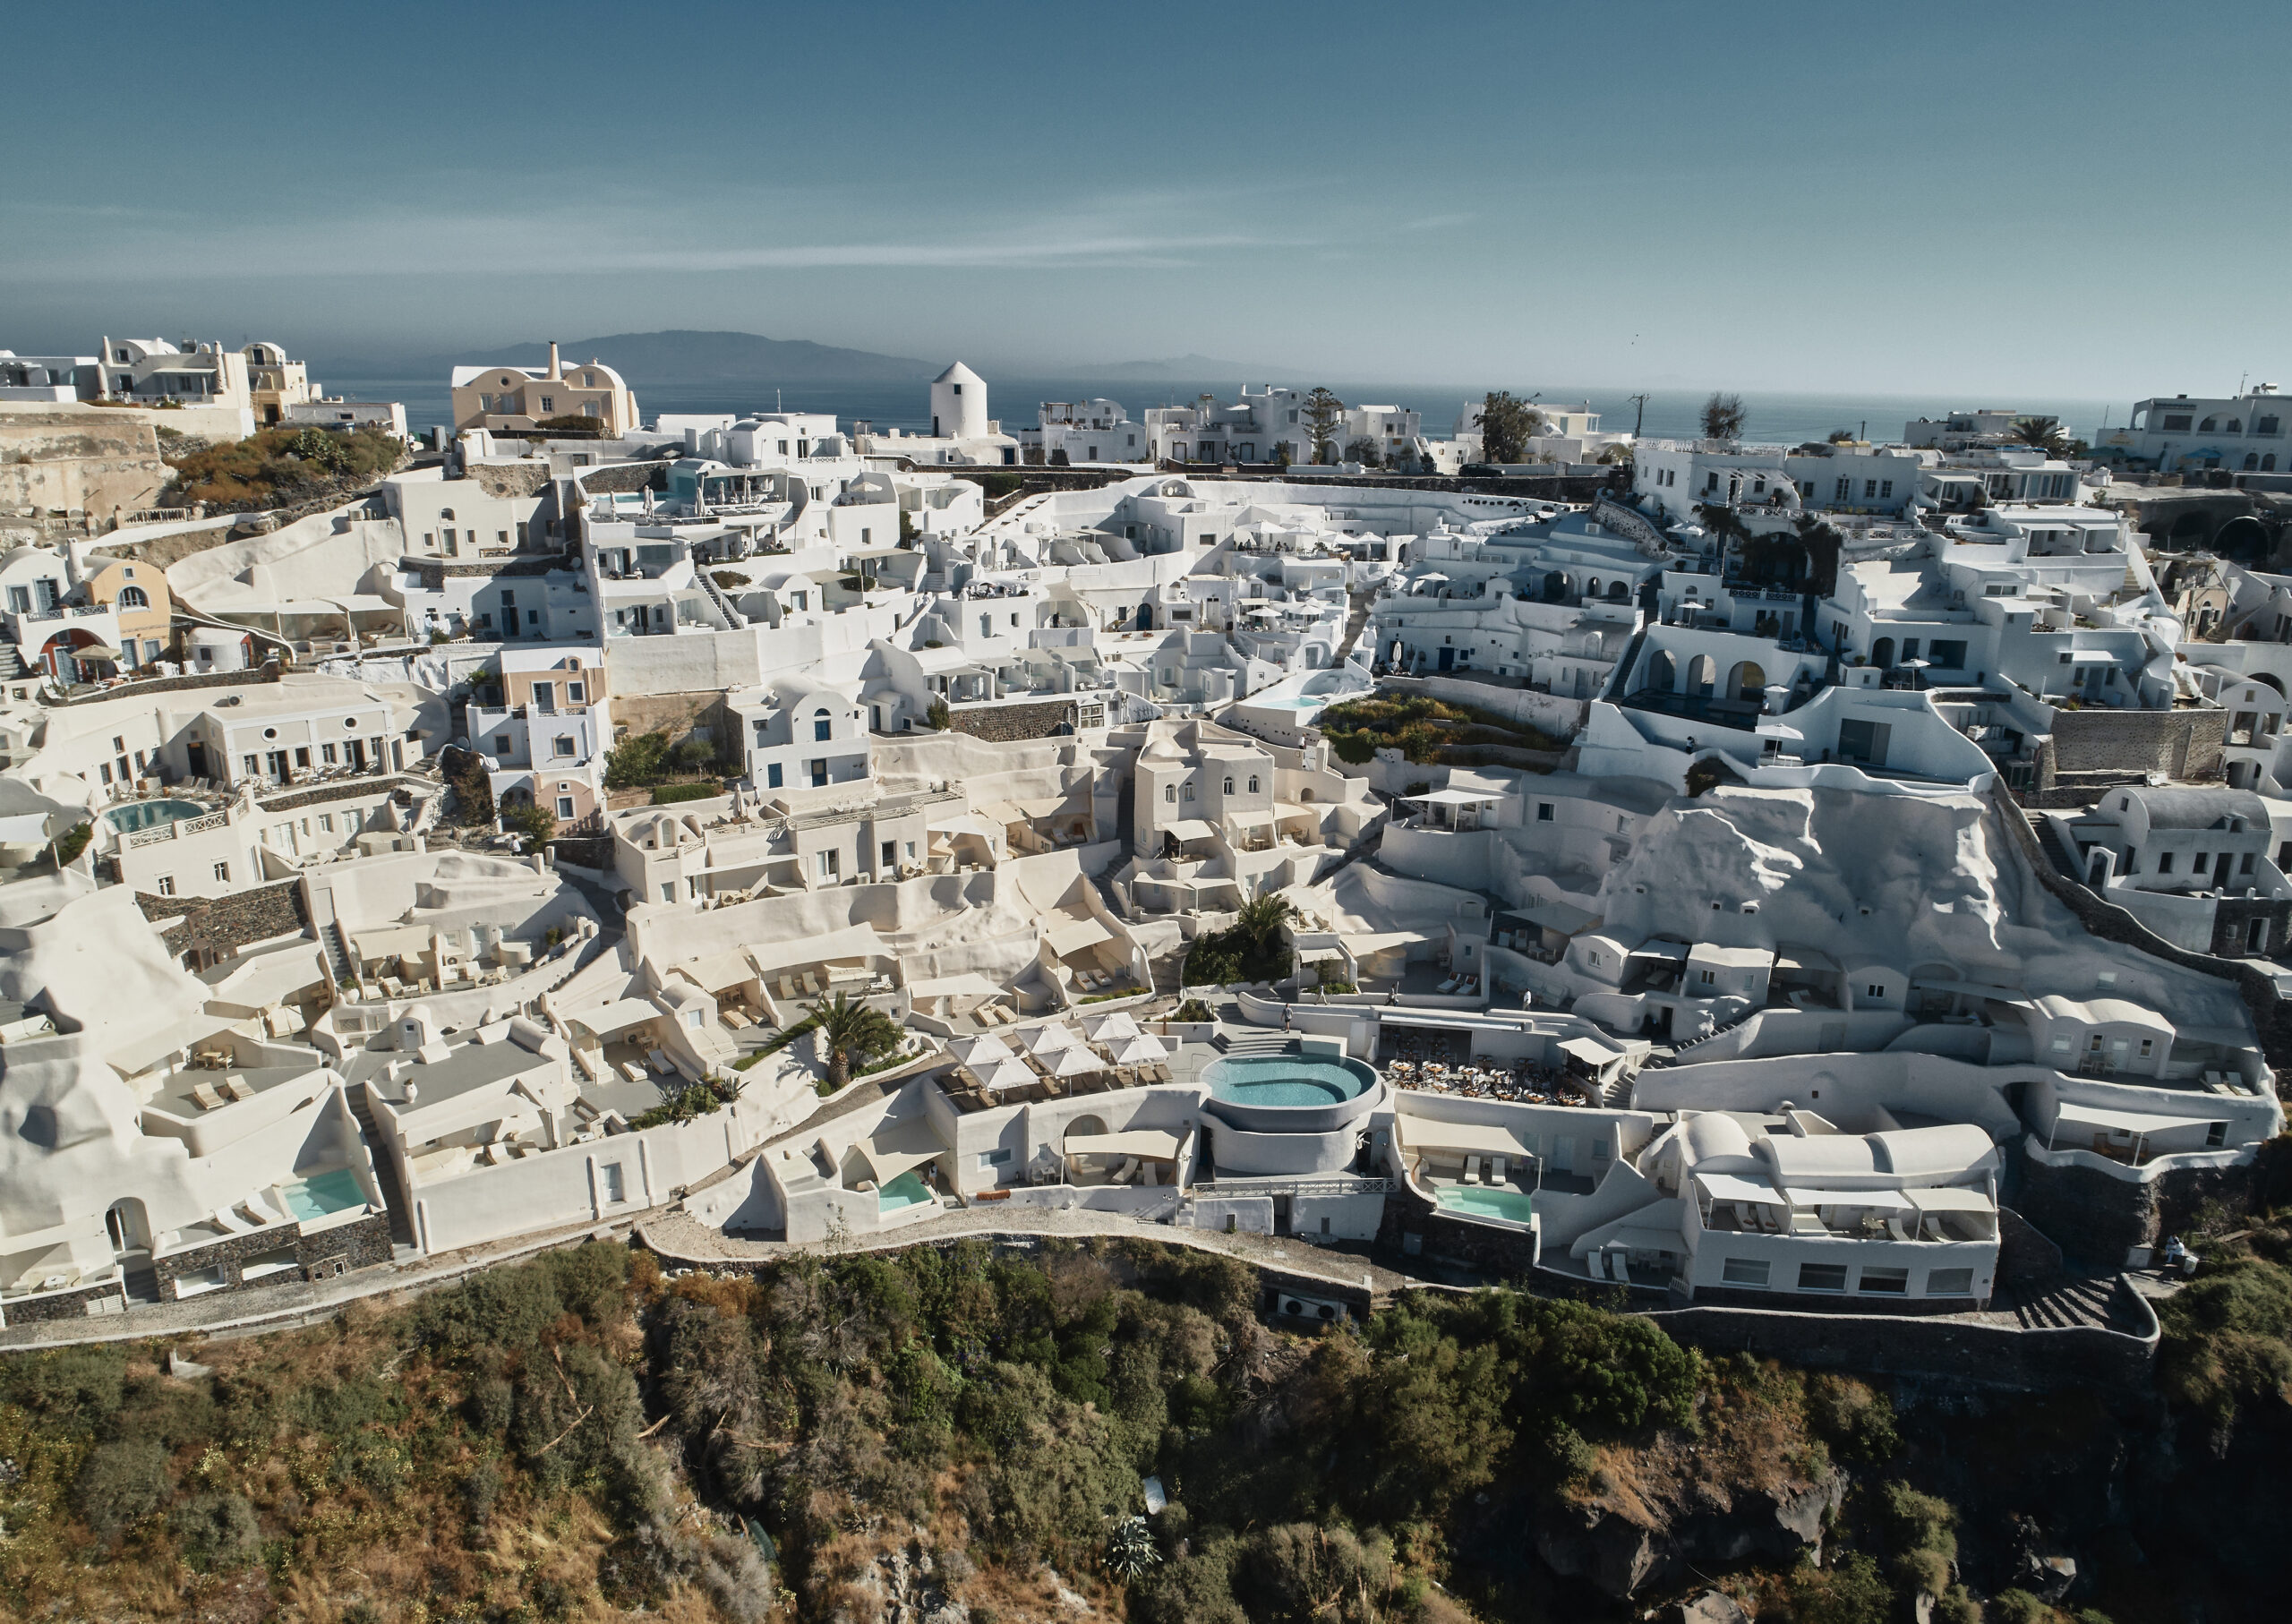 Mystique Hotel hanging from the steep cliffs of caldera in Santorini